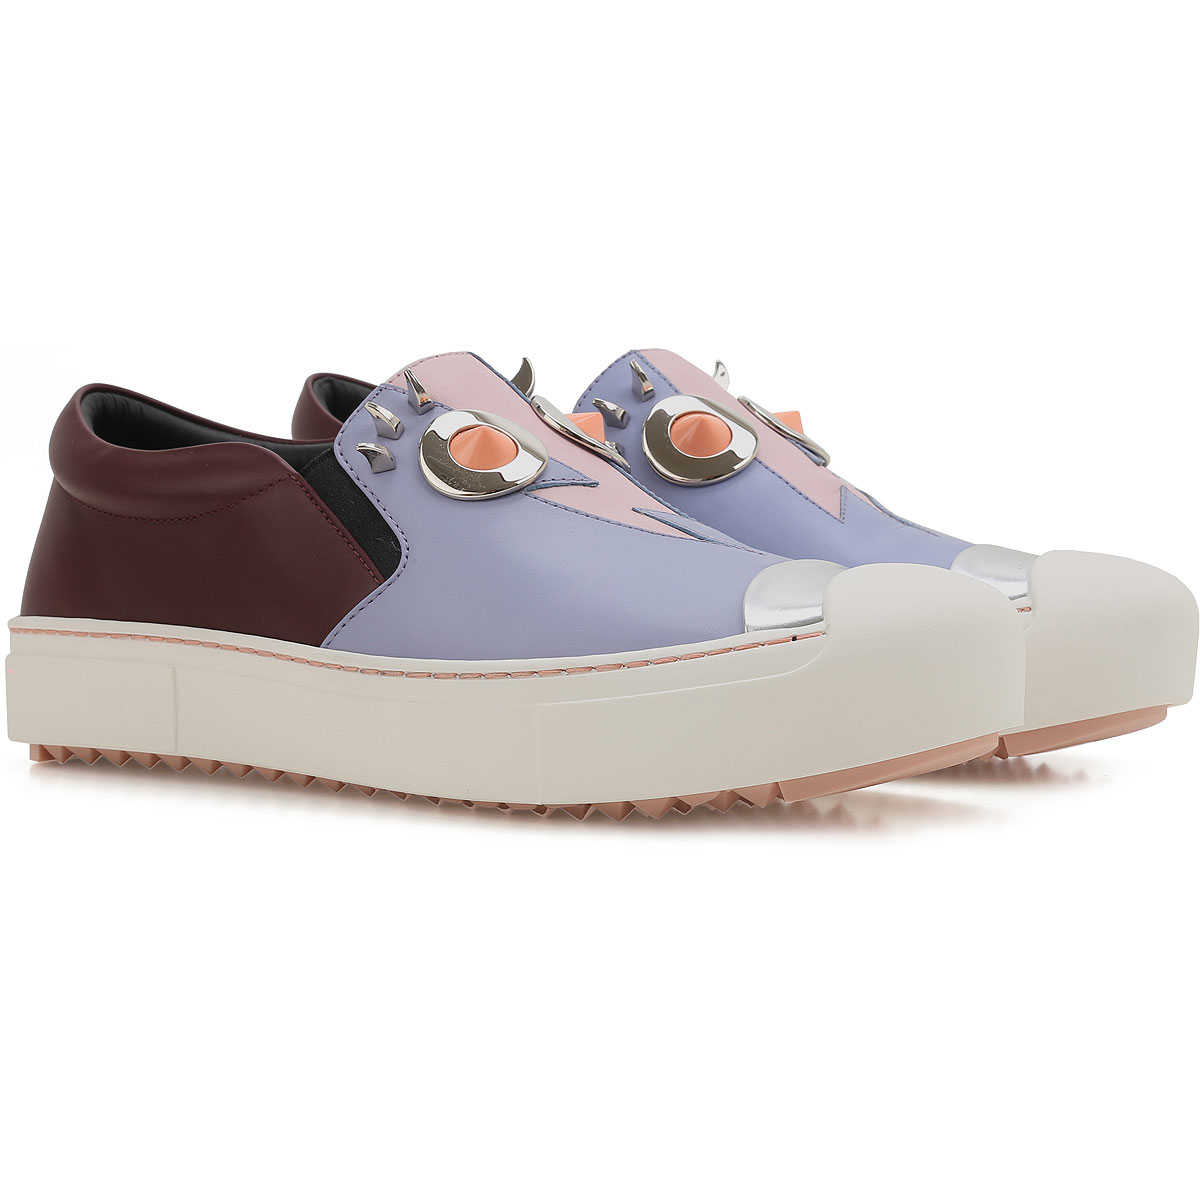 Fendi Loafers for Women in Outlet Lavande USA - GOOFASH